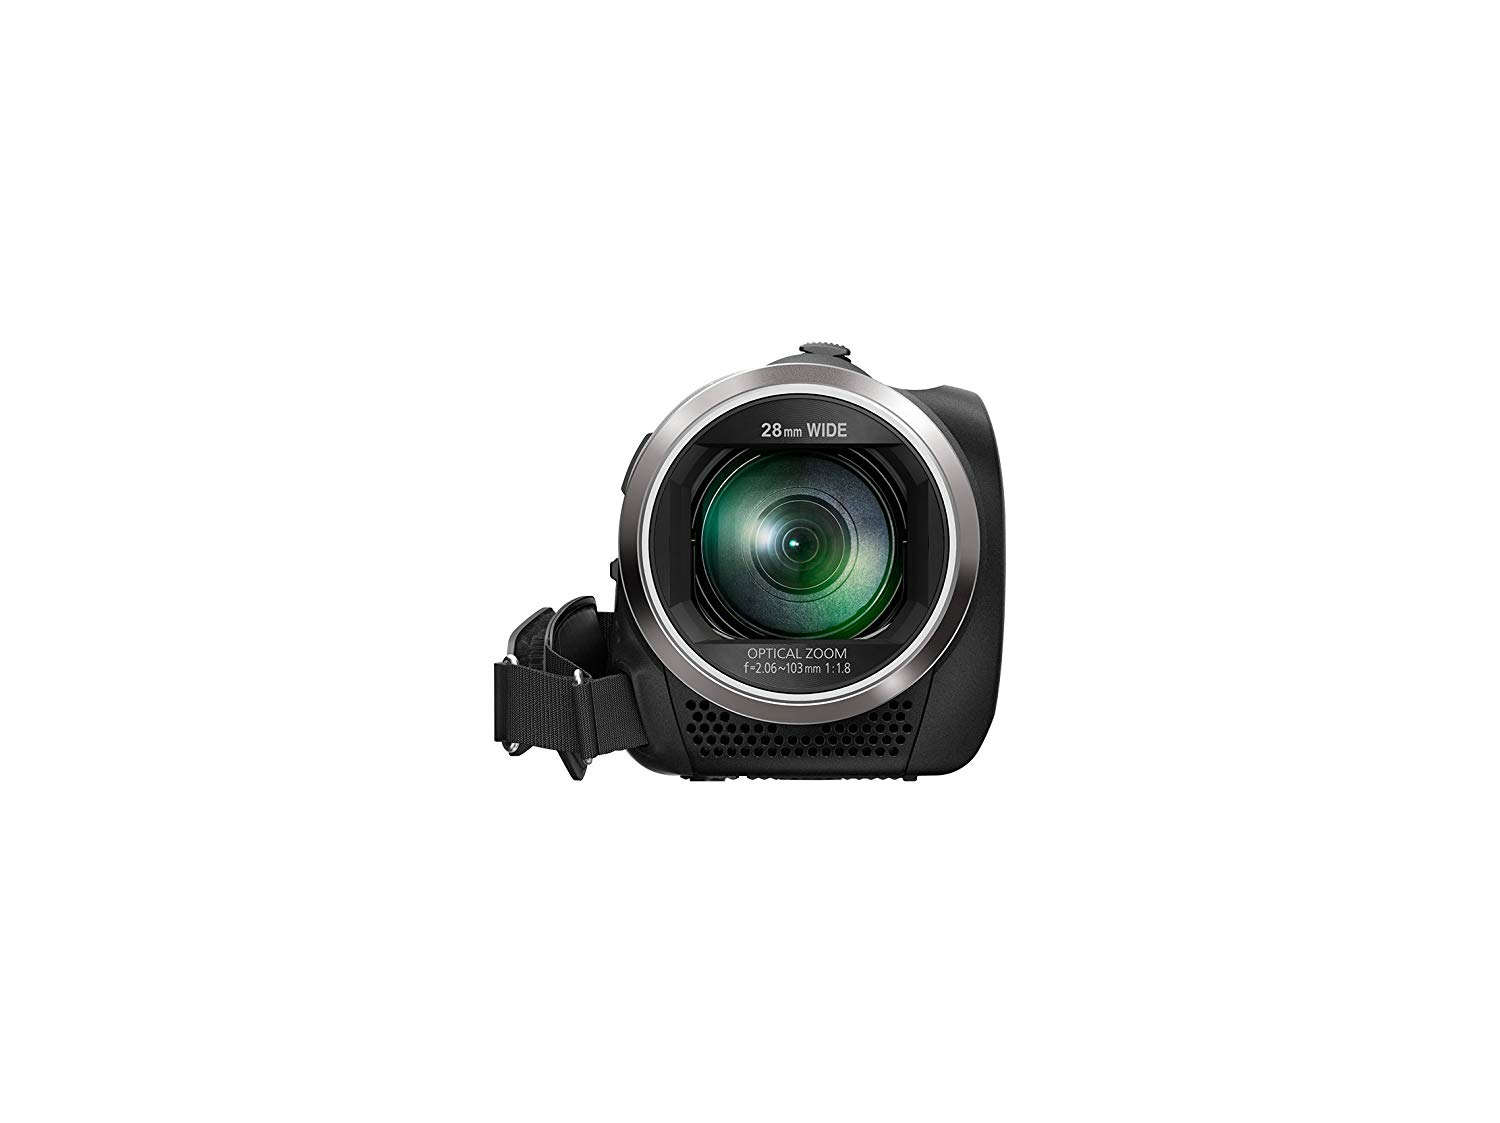 "Panasonic HC-V180 2,51 MP Mos BSI - Videocámara (2,51 MP, Mos BSI, 25,4/5,8 mm (1/5.8""), 2,2 MP, 2,2 MP, 50x)"